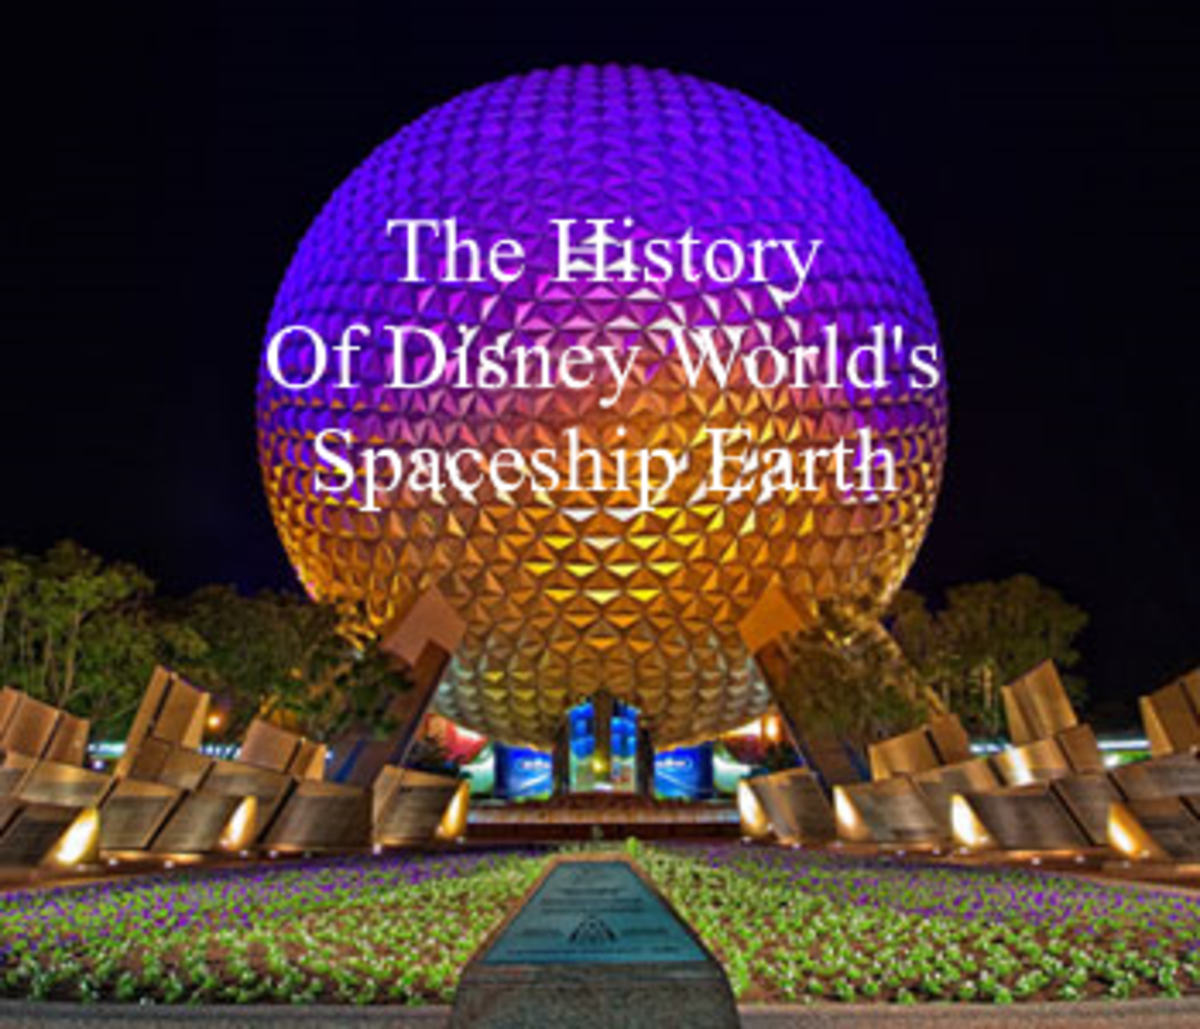 Spaceship Earth is an icon of innovention, a testament to mankind's creativity.